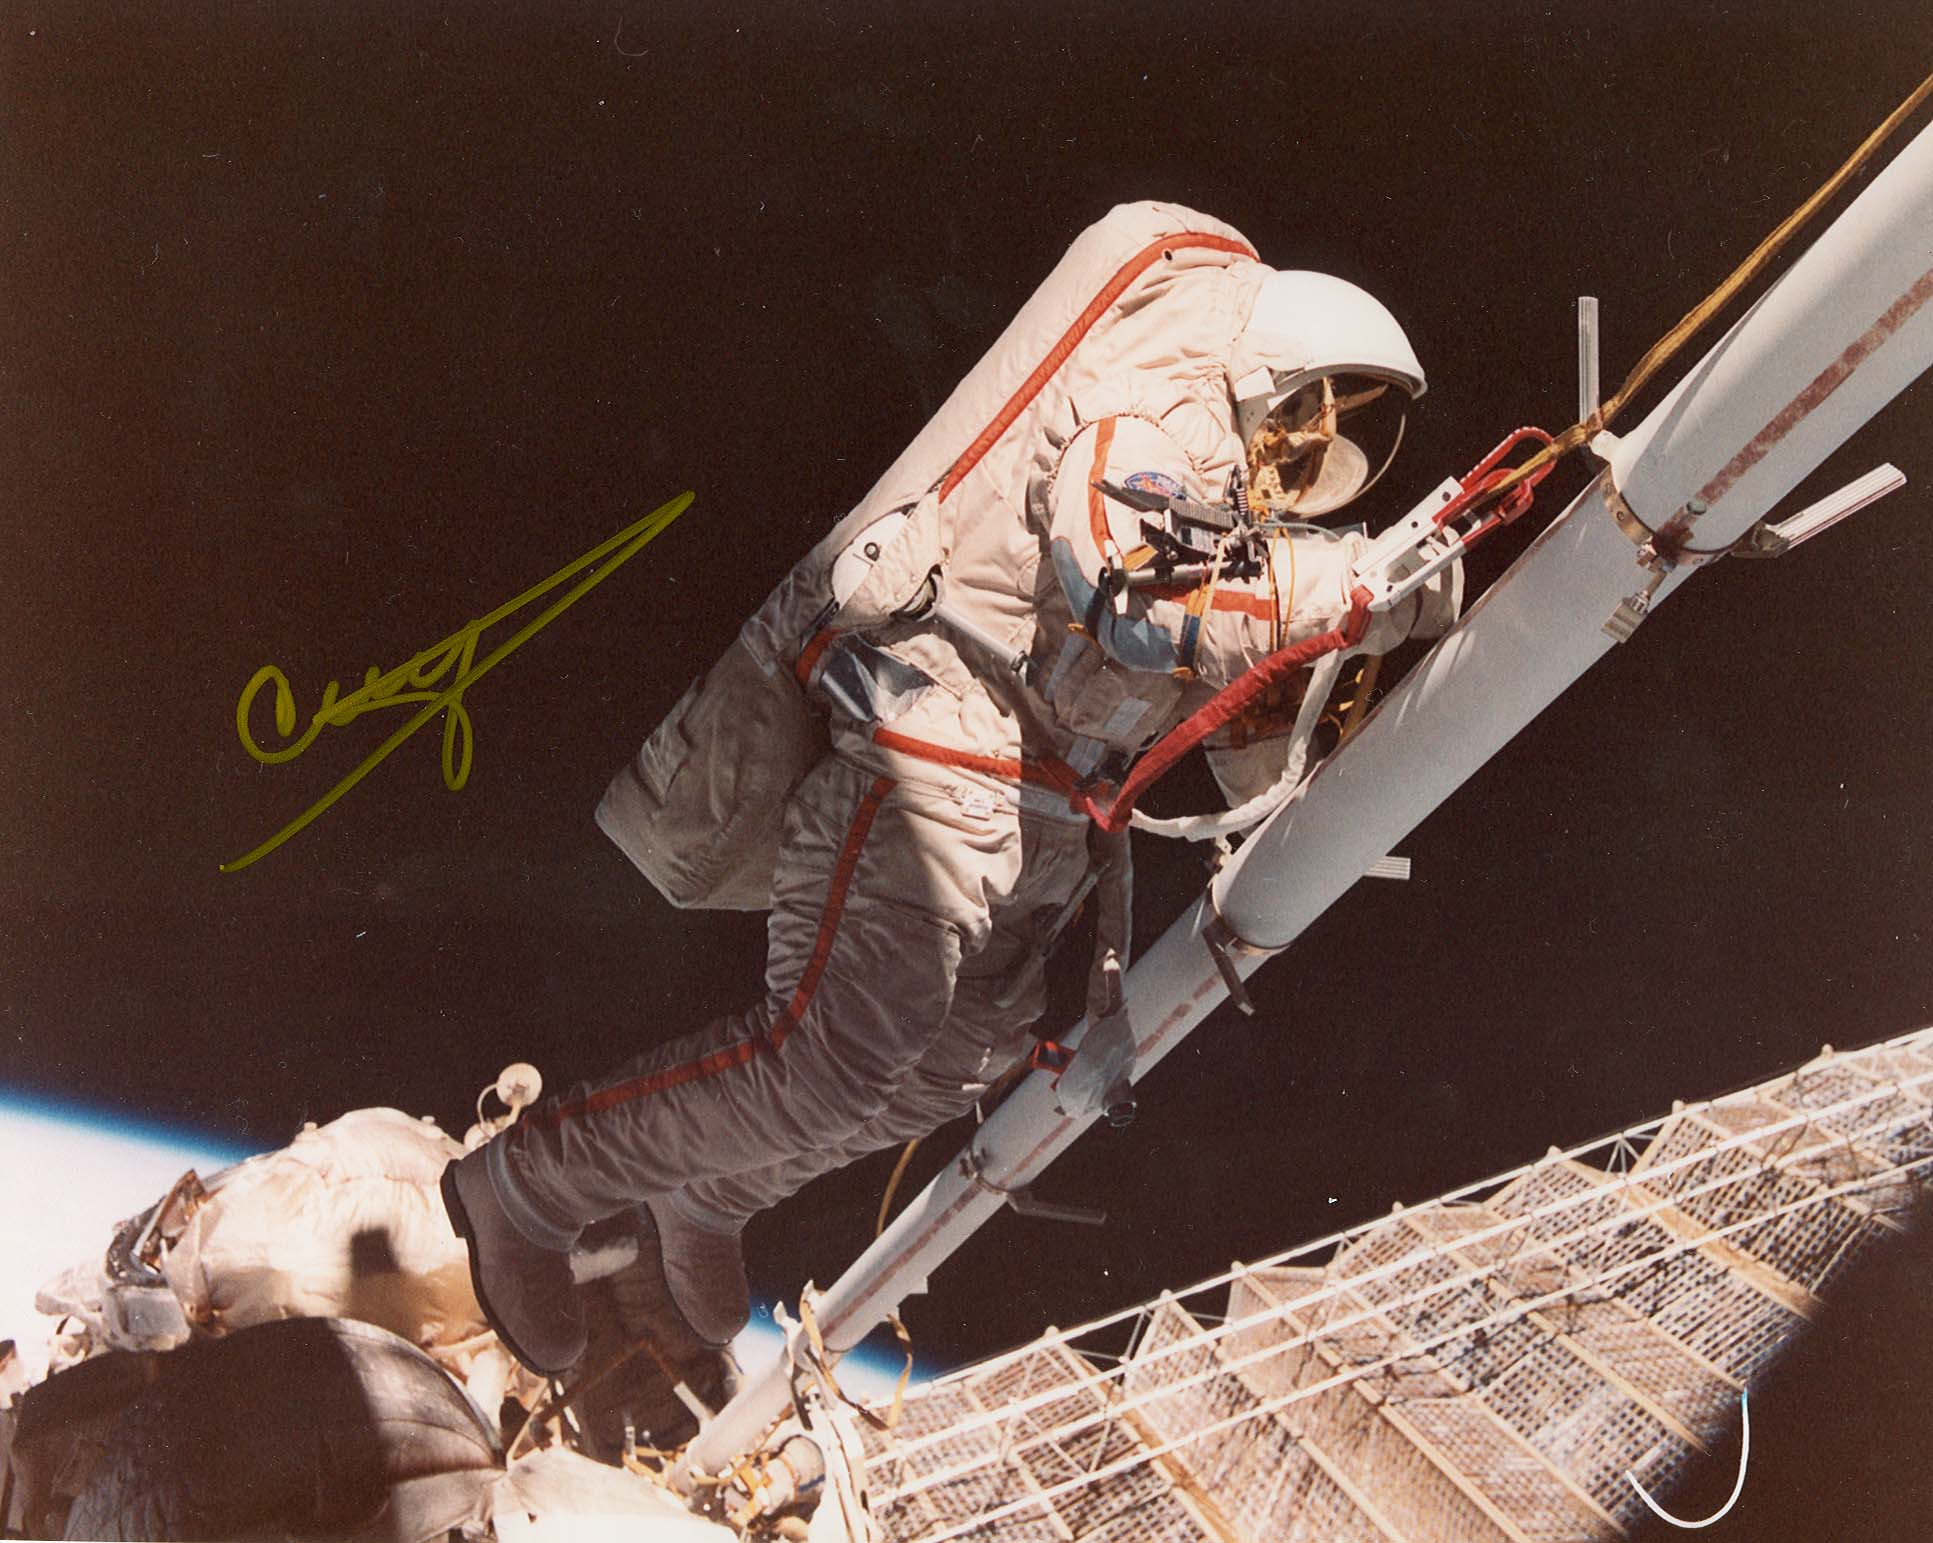 # iph800a            Cosmonaut Strekalov EVA signed photo 1